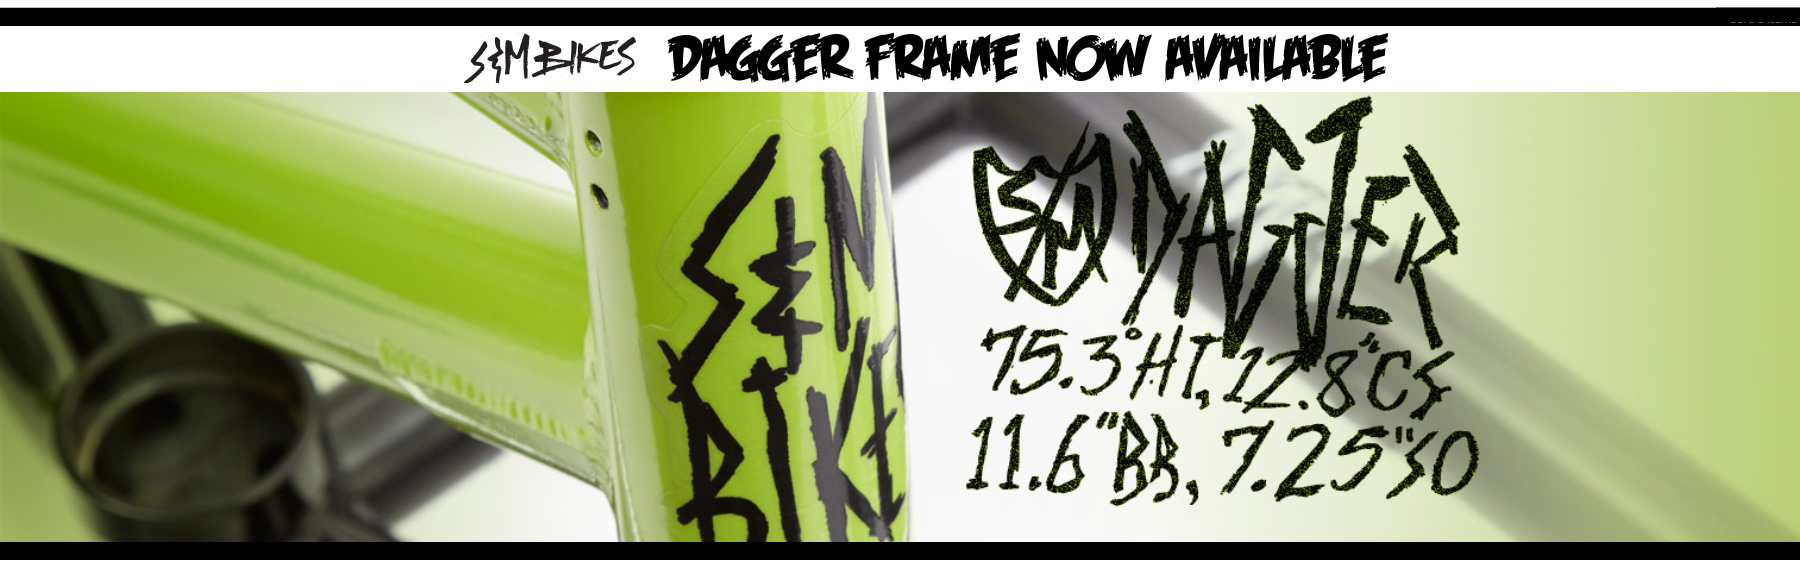 S&M Dagger BMX Frame available at Albe's BMX